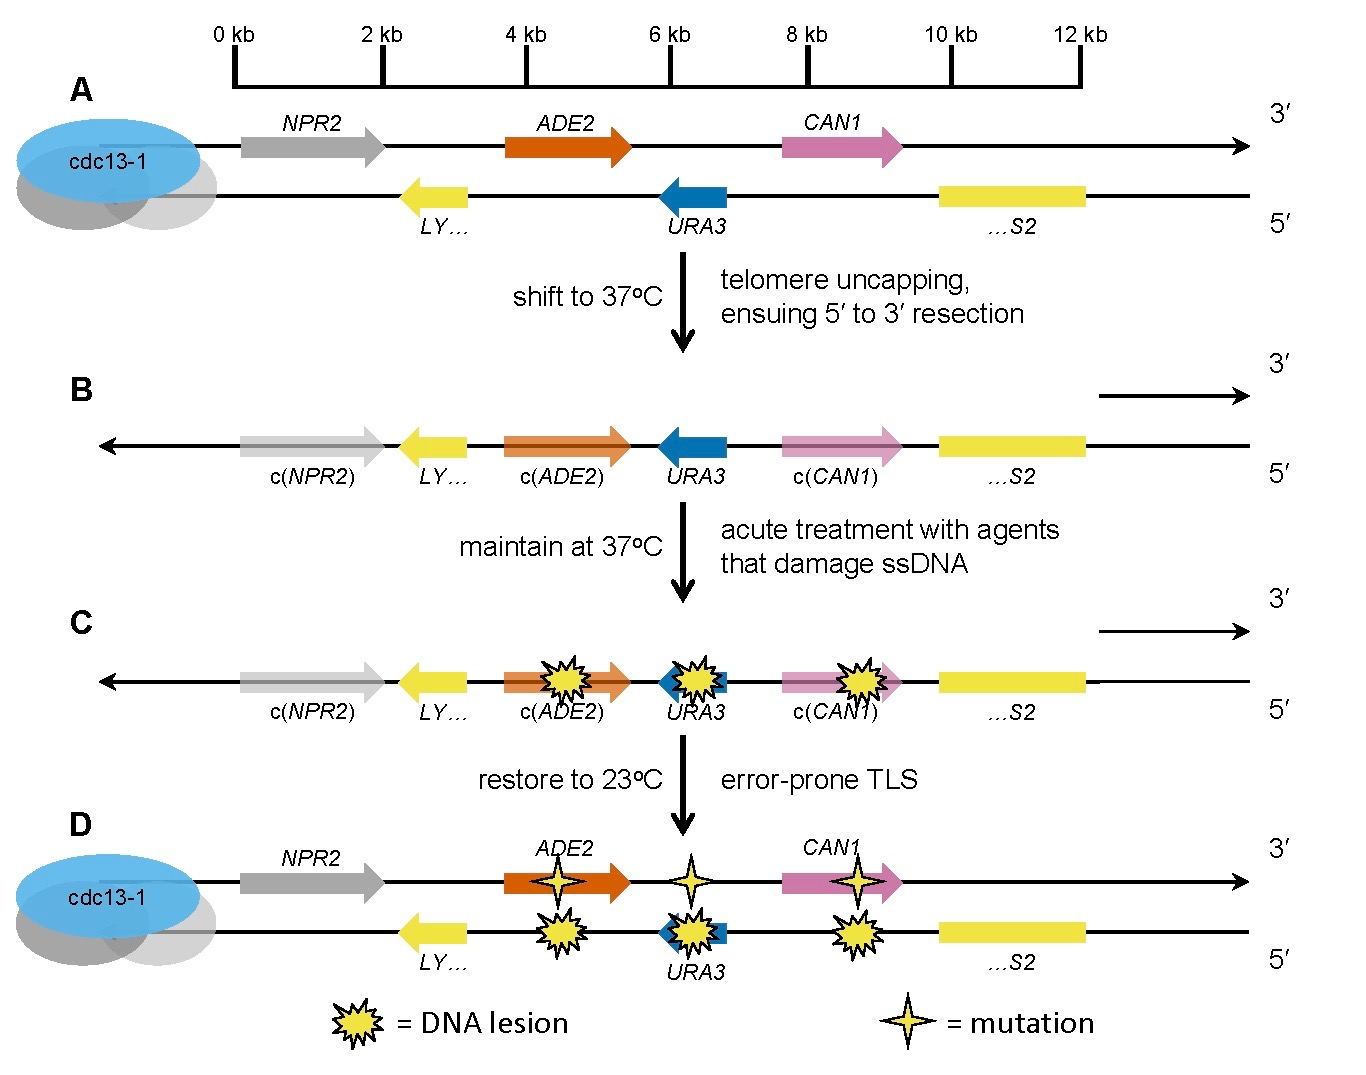 A. Three reporter genes ( ADE2 , URA3 , and  CAN1 ) are embedded near a telomere in a  cdc13-1 haploid yeast background.    B. Shifting to 37 degrees destabilizes the Cdc13-1 mutant protein, resulting in loss of the protective proteinaceous capping structure at the telomere. The uncapped telomere is recognized as a DNA double-strand end, which is enzymatically resected to generate a long single-strand DNA (ssDNA)overhang.    C. Exposure to a test mutagen/carcinogen creates damage lesions in the exposed ssDNA.    D. Restoration to 23 degrees triggers re-synthesis of double-strand DNA. Specialized error-prone translesion synthesis (TLS) polymerases create mutations opposite the lesions. Clusters of mutations that inactivate more than one reporter gene can be selected by plating on the appropriate media.